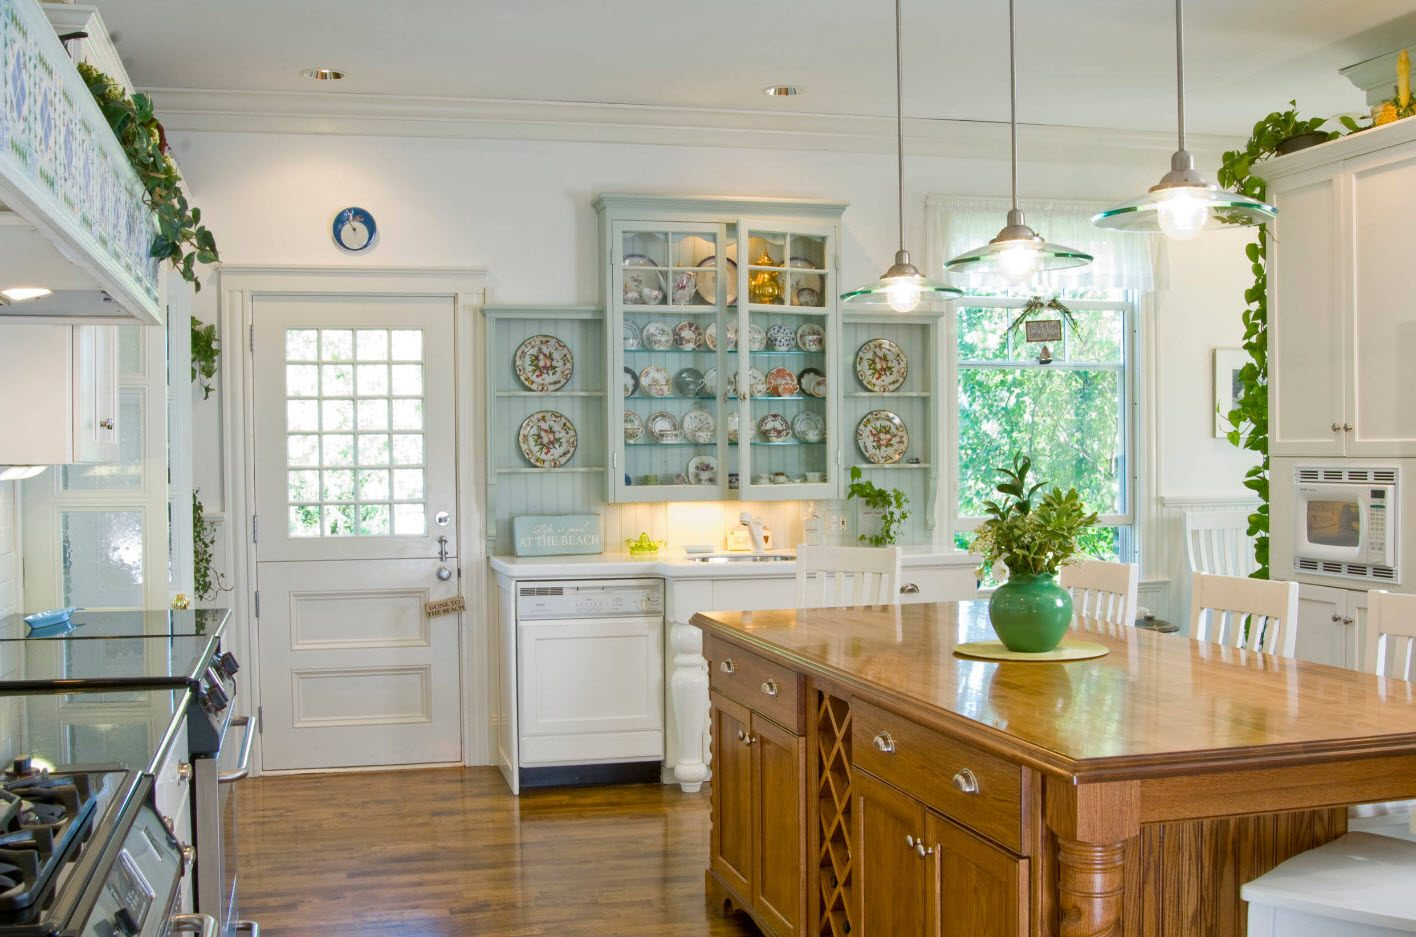 Classic kitchen design with light wooden island